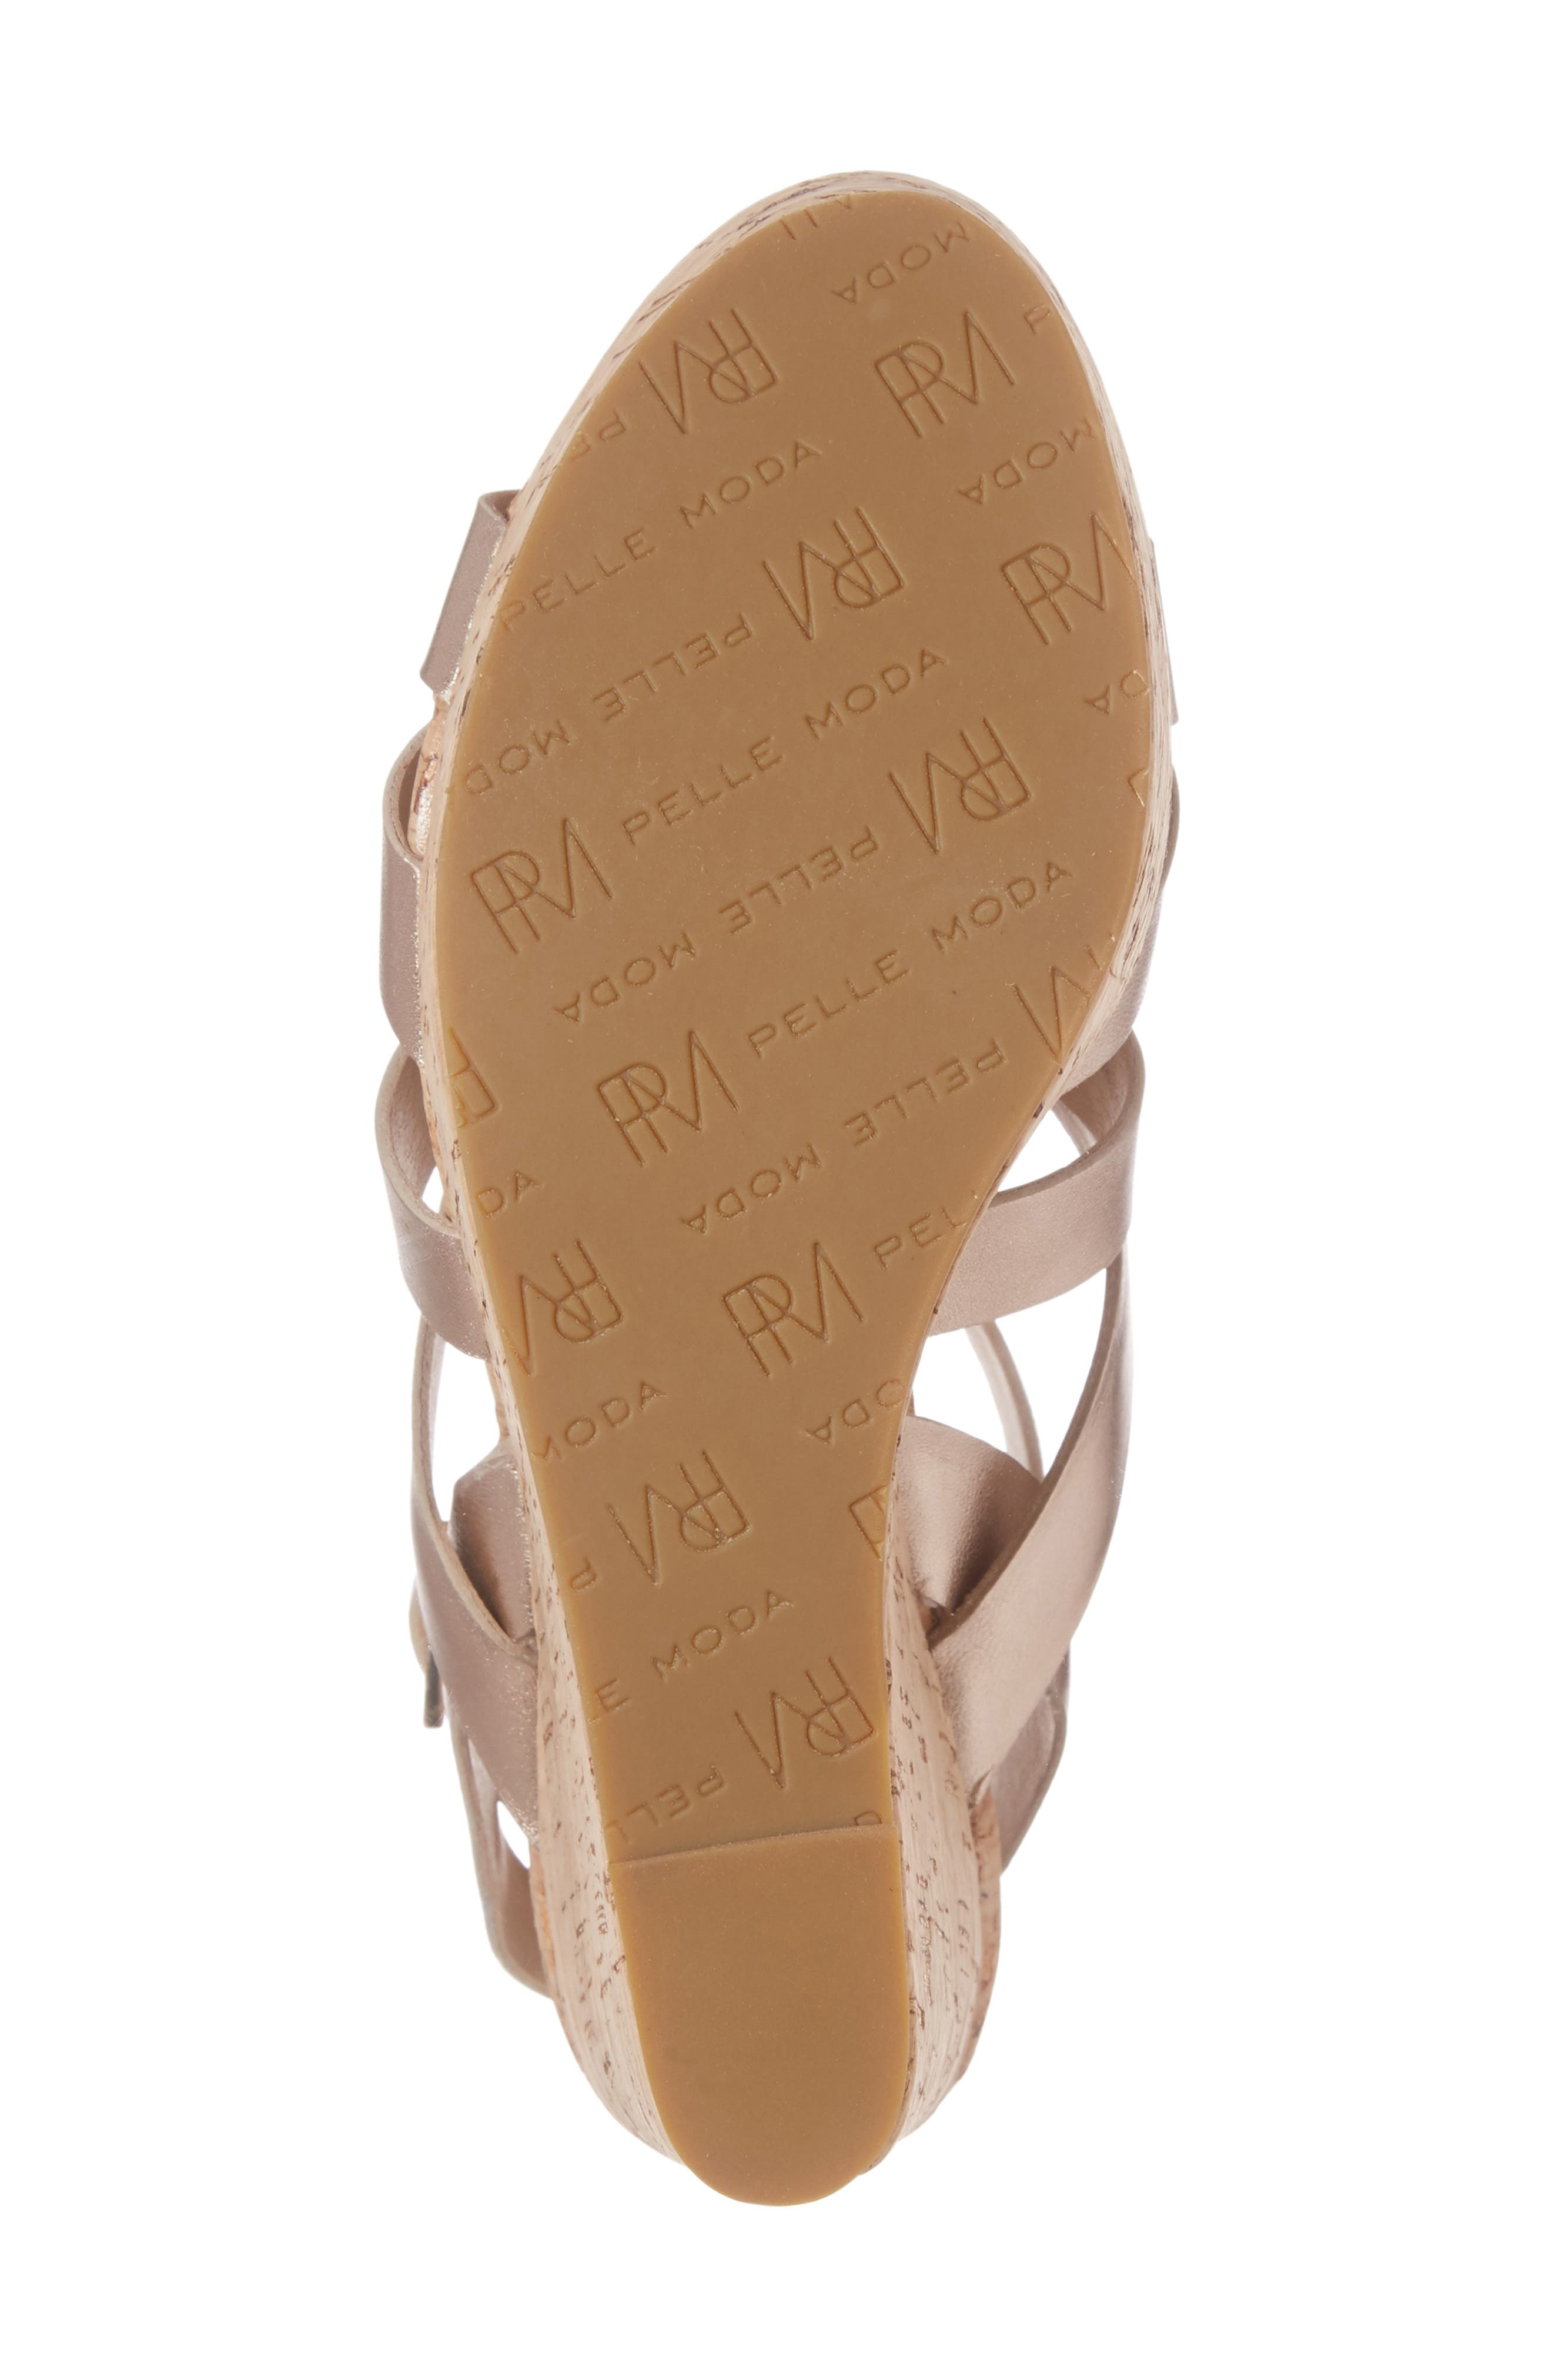 Rayjay Wedge Sandal,                             Alternate thumbnail 24, color,